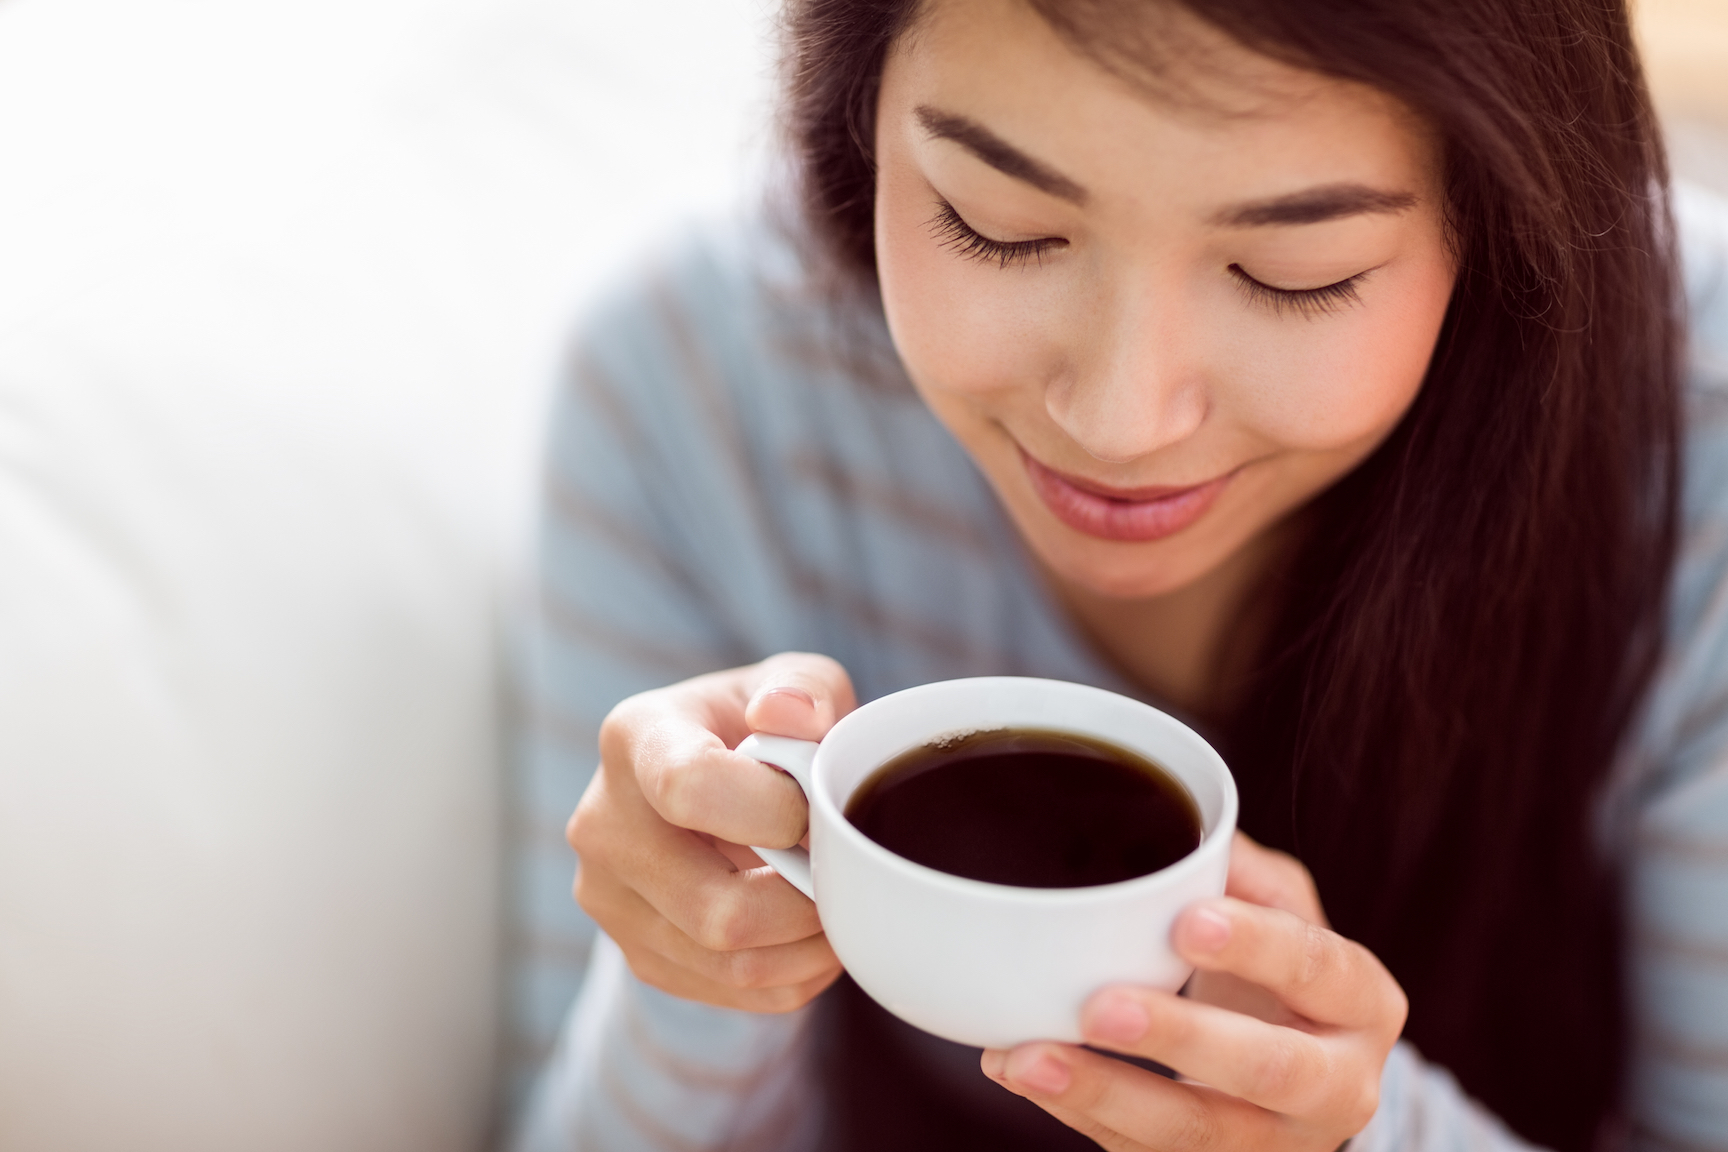 People who drink coffee appear to live longer, and it's not because of the caffeine, a new study from USC has found.